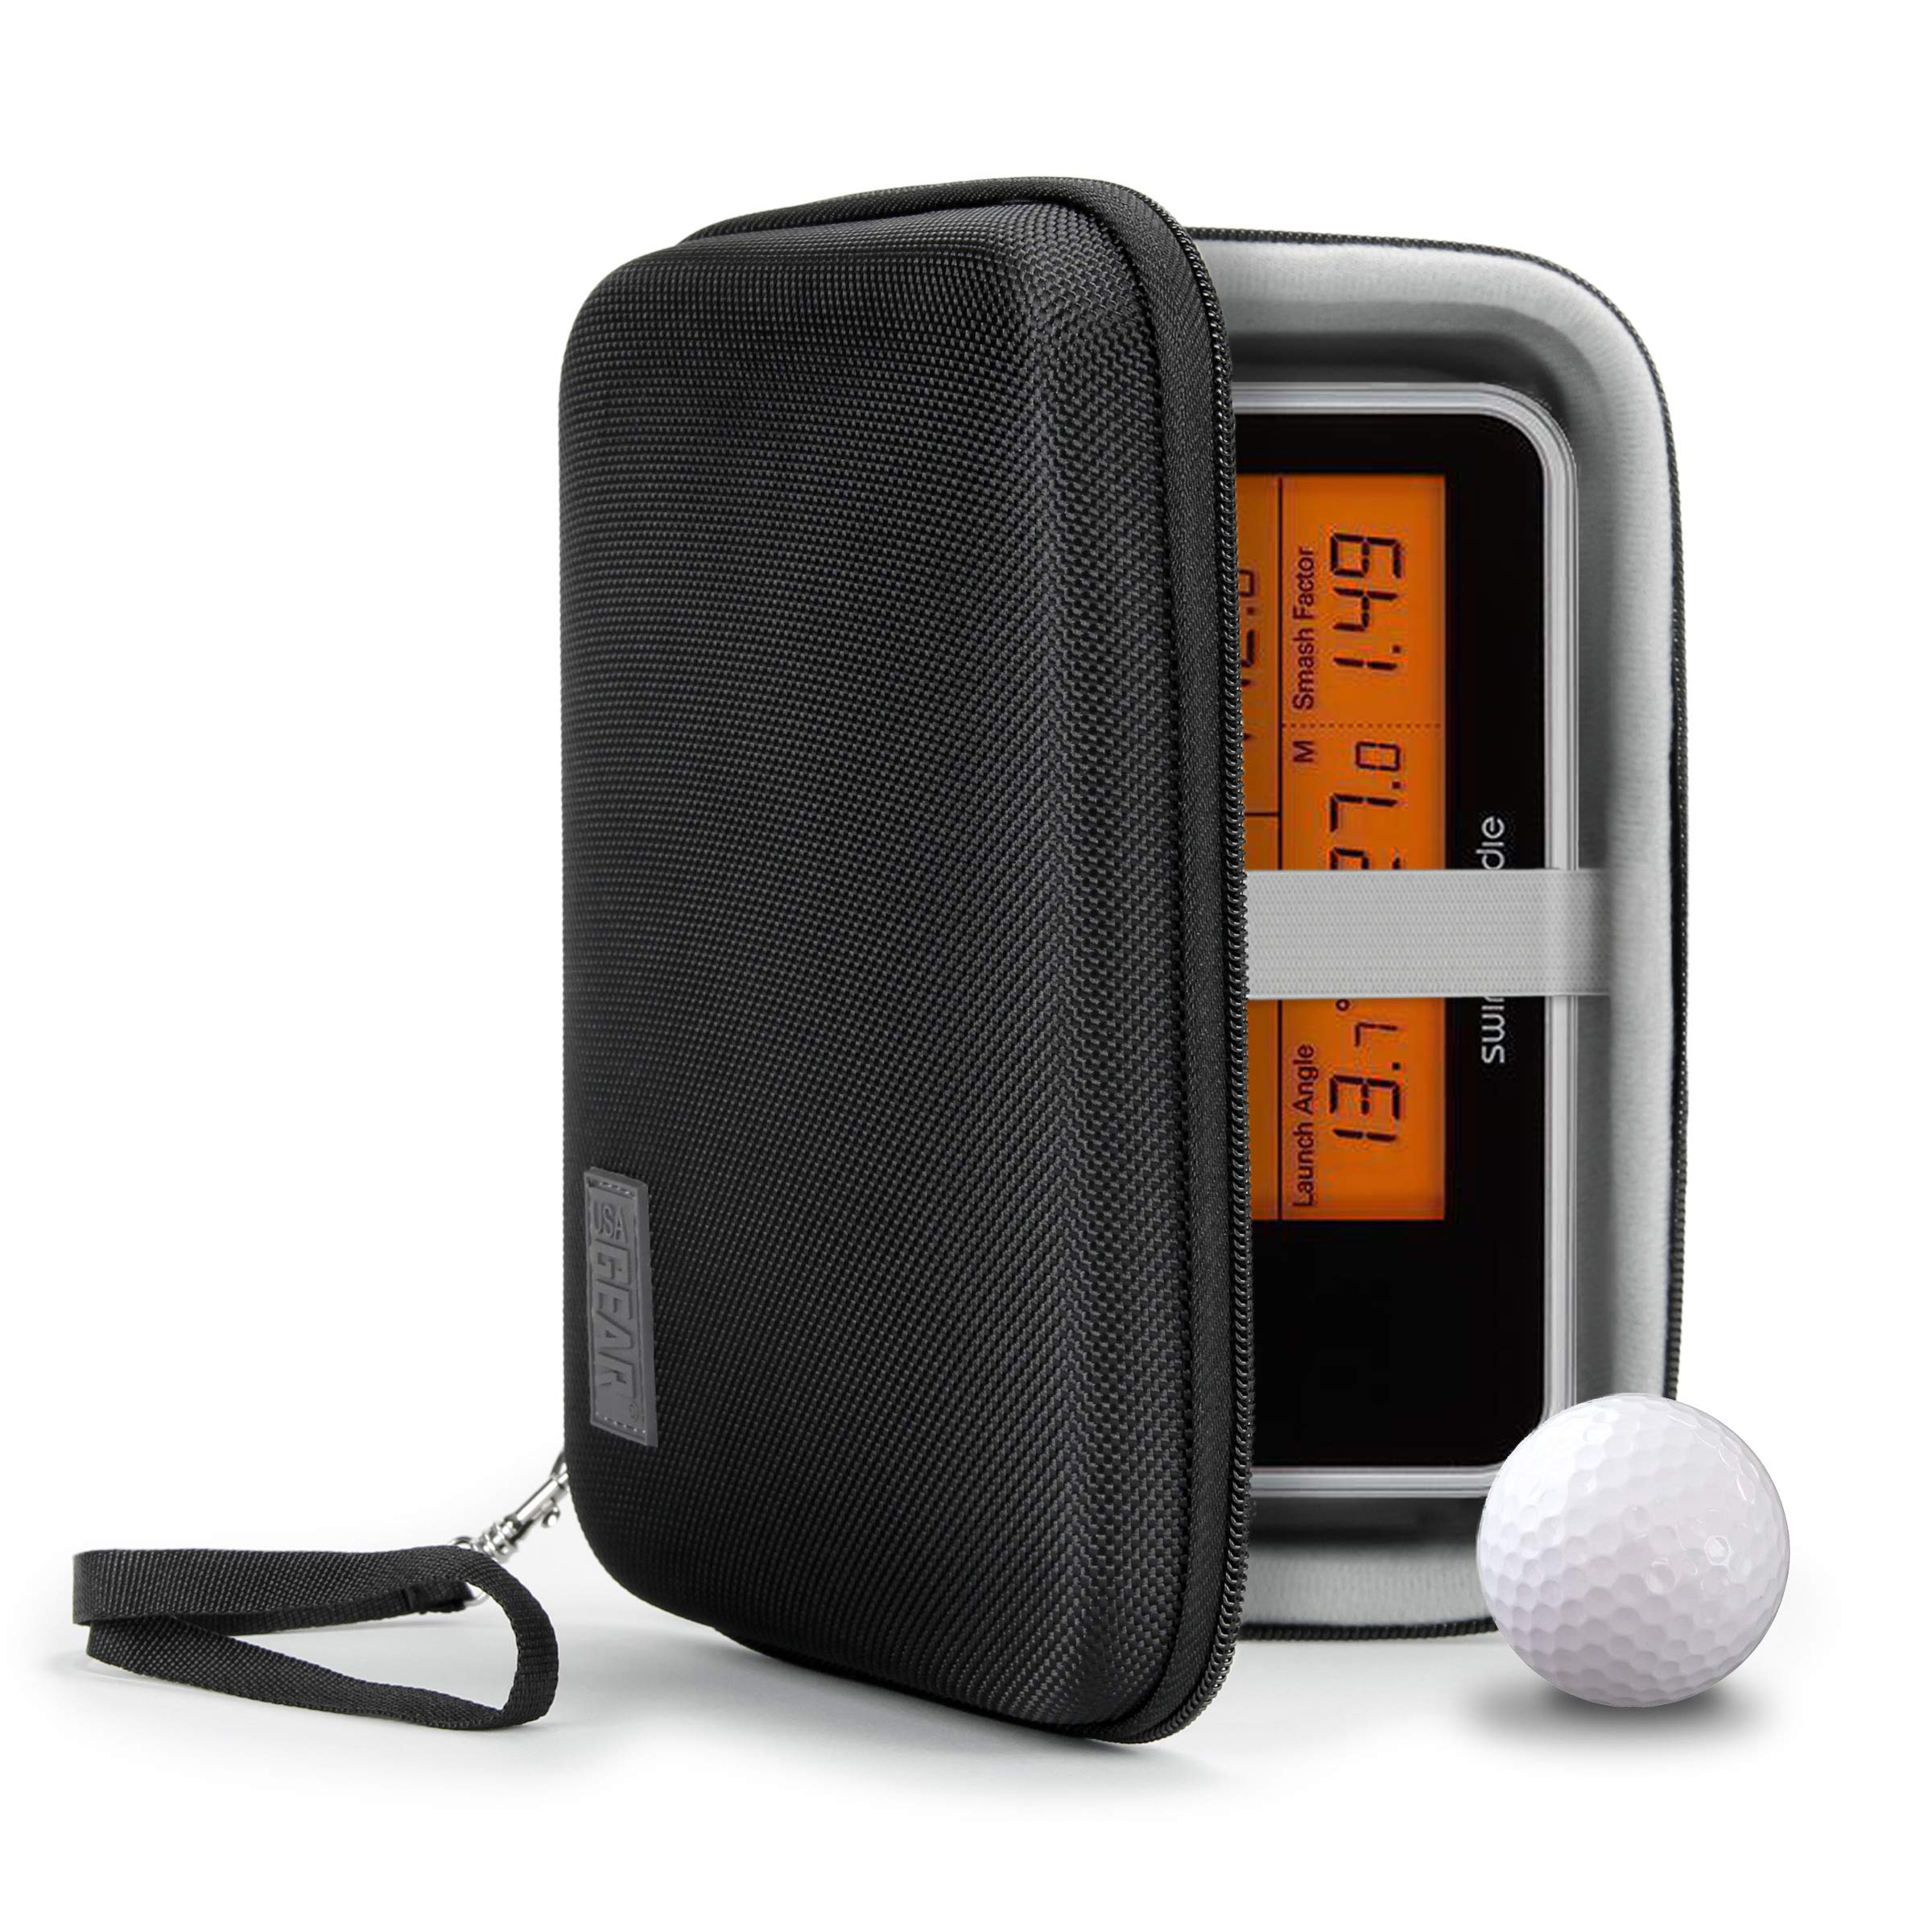 USA GEAR Golf Monitor Case - Swing Caddie Hard Case Compatible with - Swing Caddie SC300, SC200 Plus, and More Golf Accessories - Water Resistant Exterior and Scratch Resistant Interior (Black)